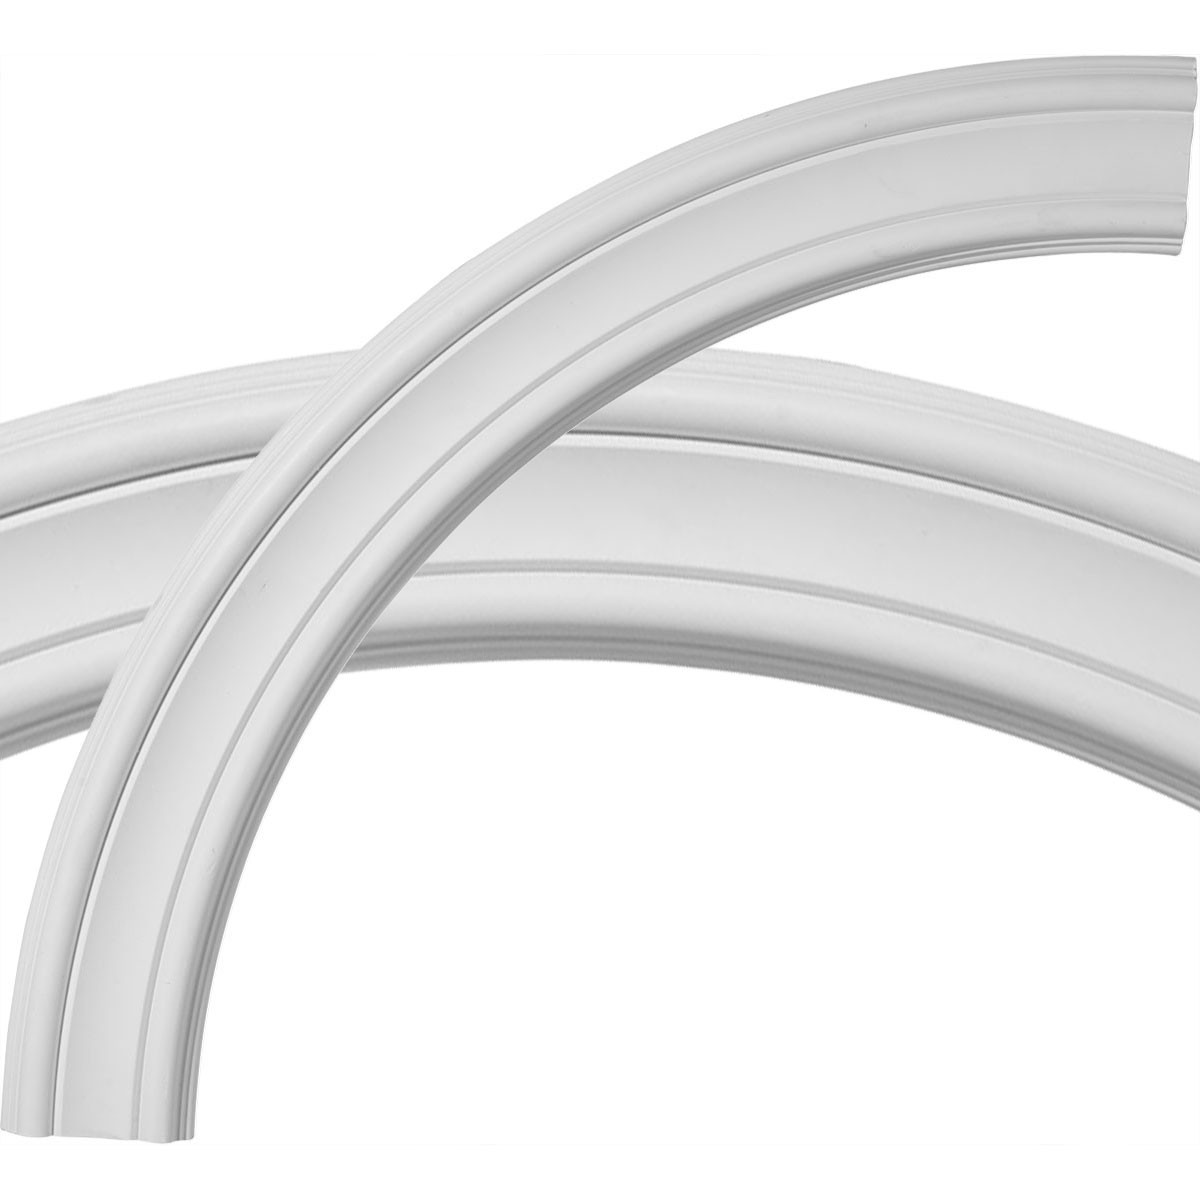 """EM-CR35PI - 36 1/2""""OD x 30 1/4""""ID x 3 1/8""""W x 3/4""""P Pierced Ceiling Ring (1/4 of complete circle)"""